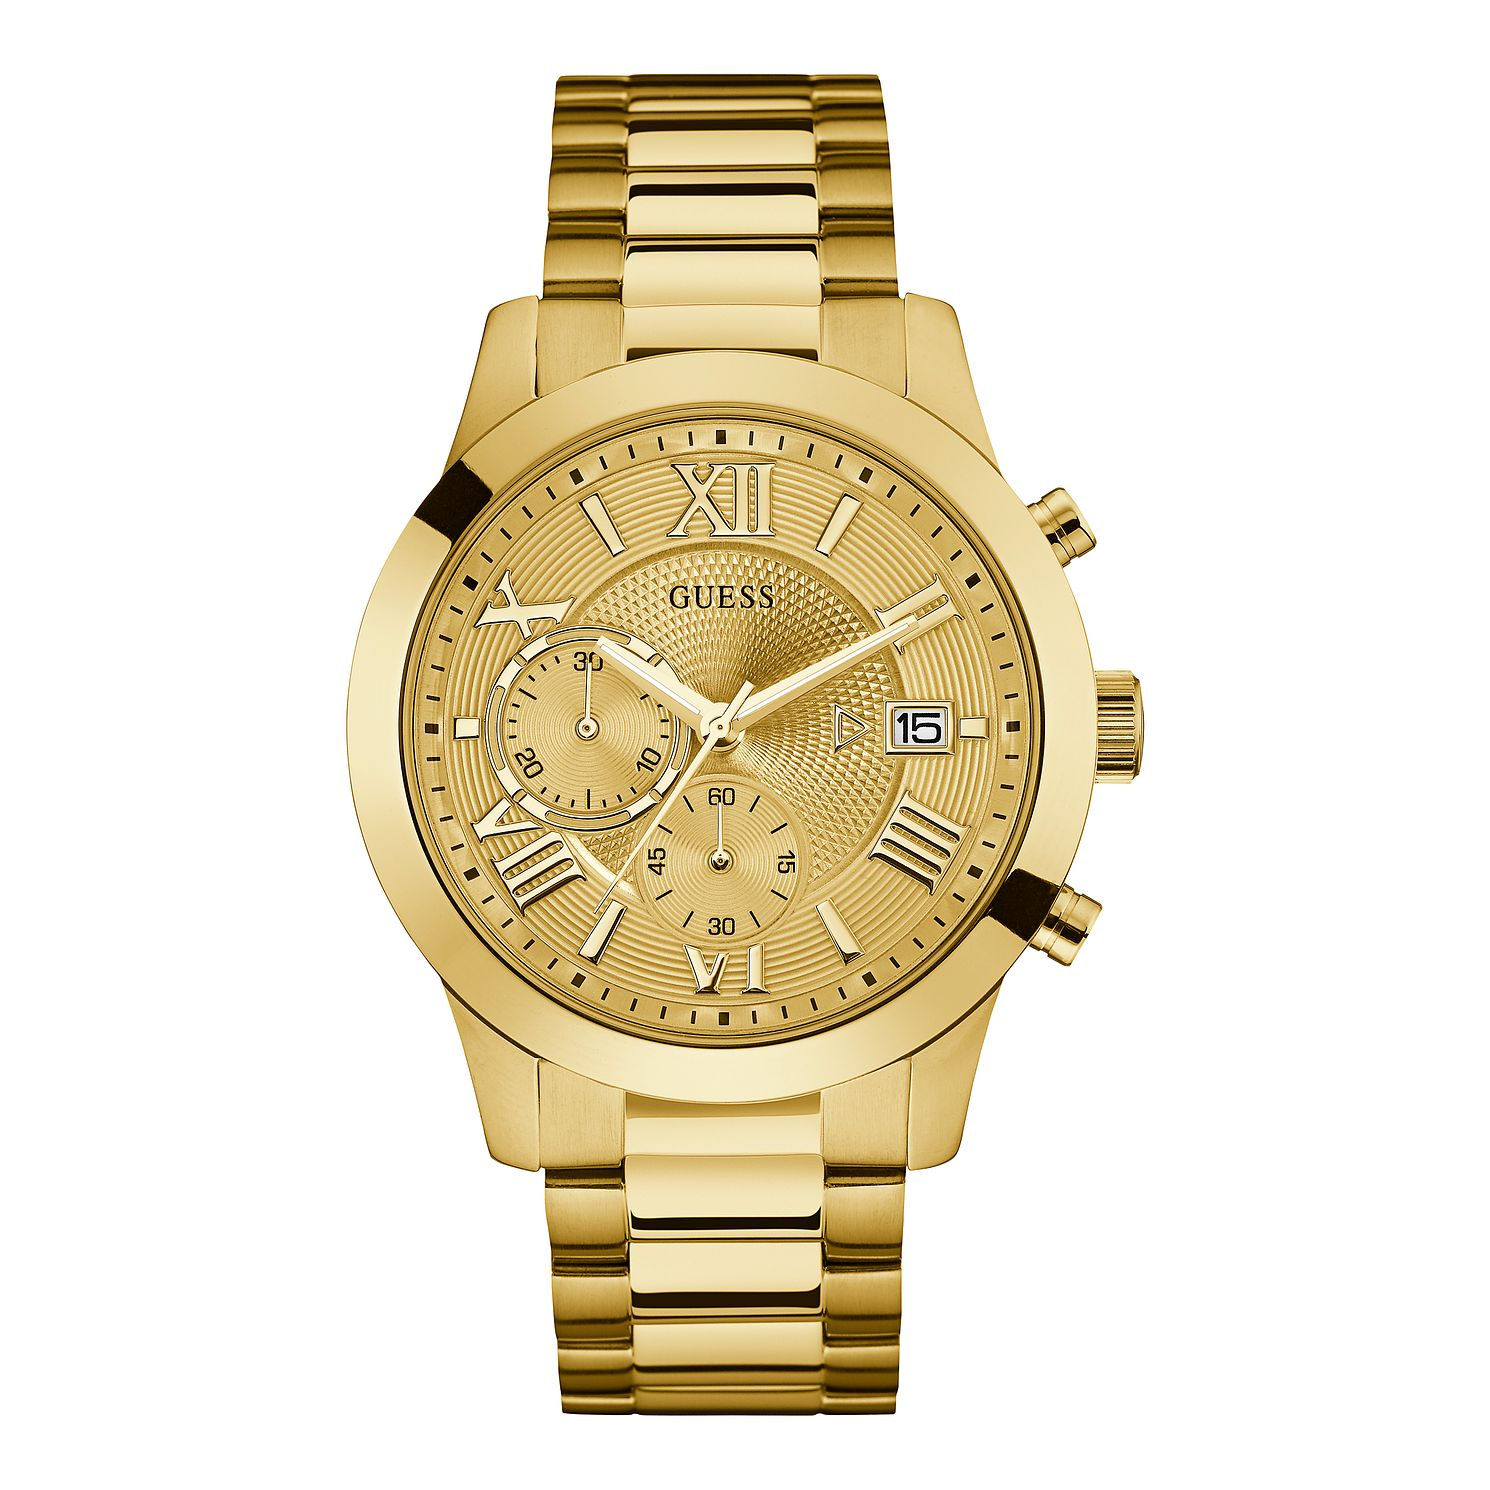 Guess Men's Chronograph Gold Tone Bracelet Watch - Product number 1090763